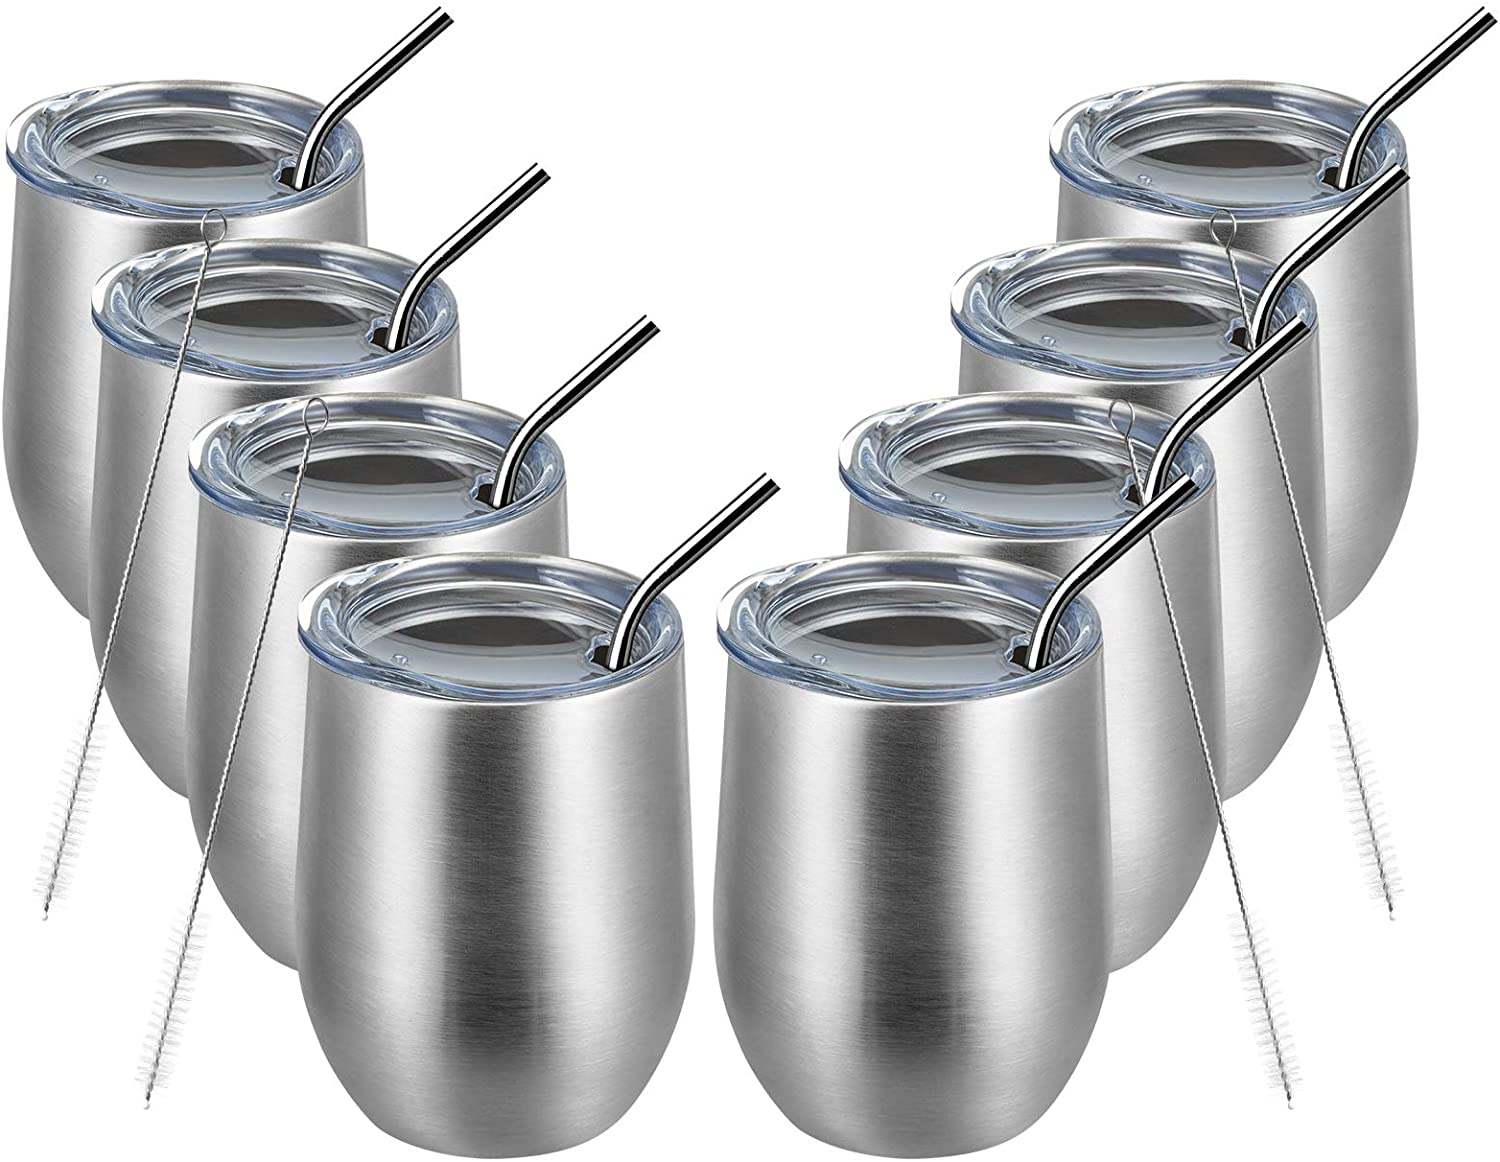 Stainless Steel Tumbler (12 oz)